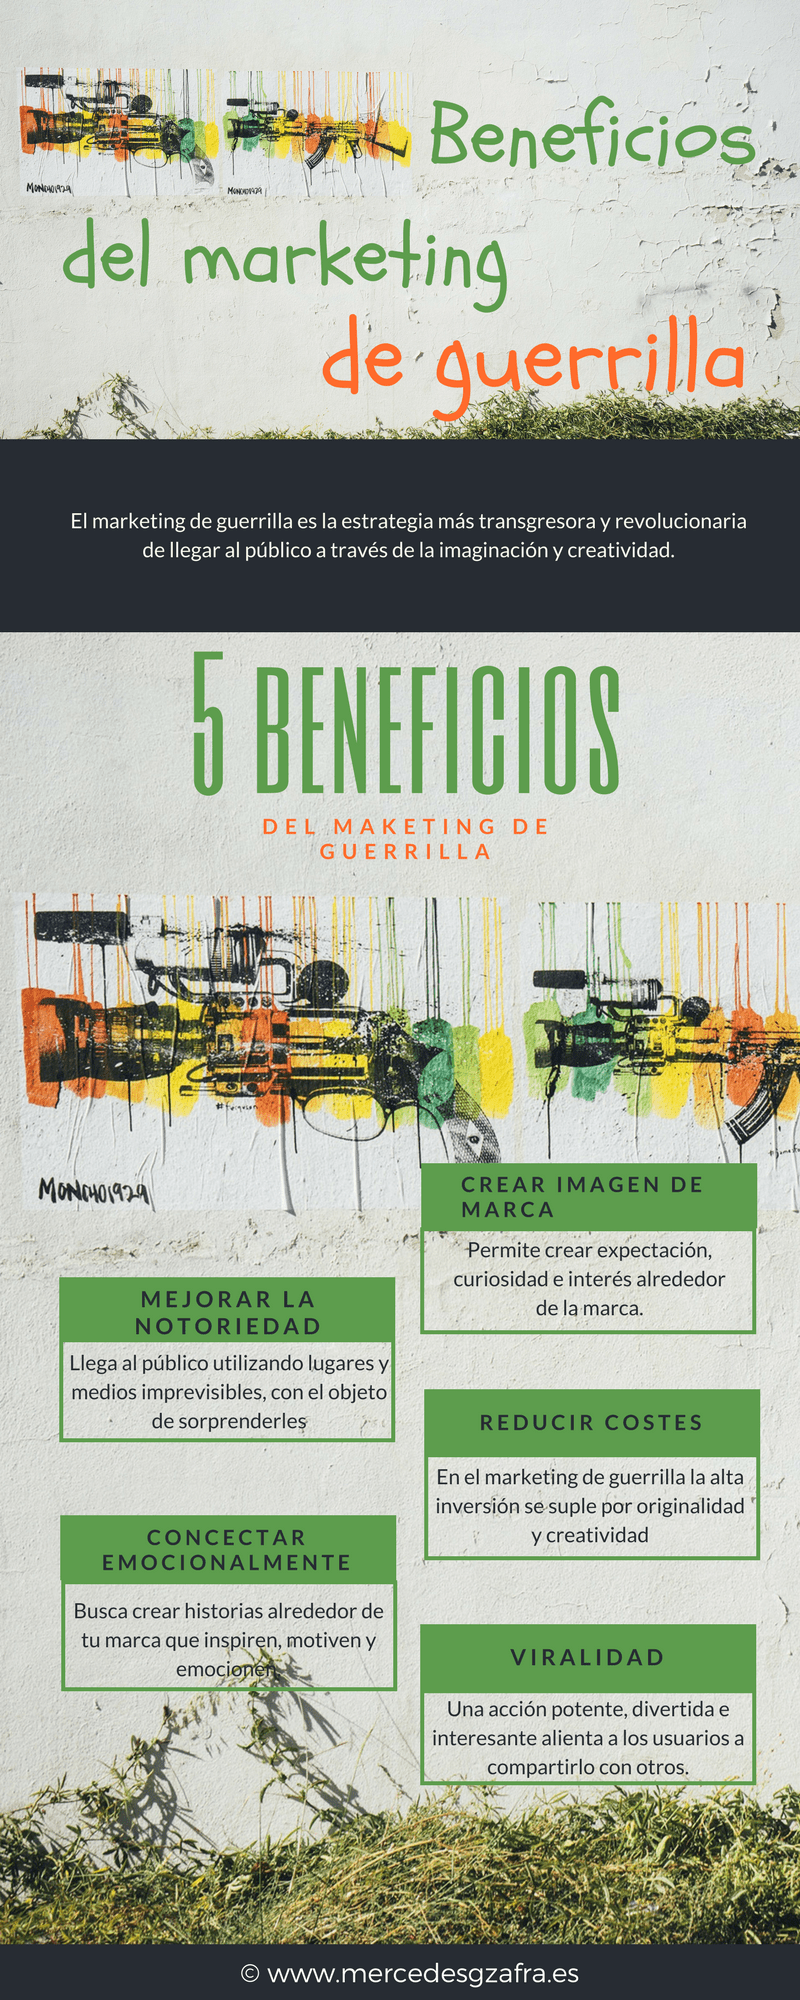 5 beneficios del Marketing de Guerrilla